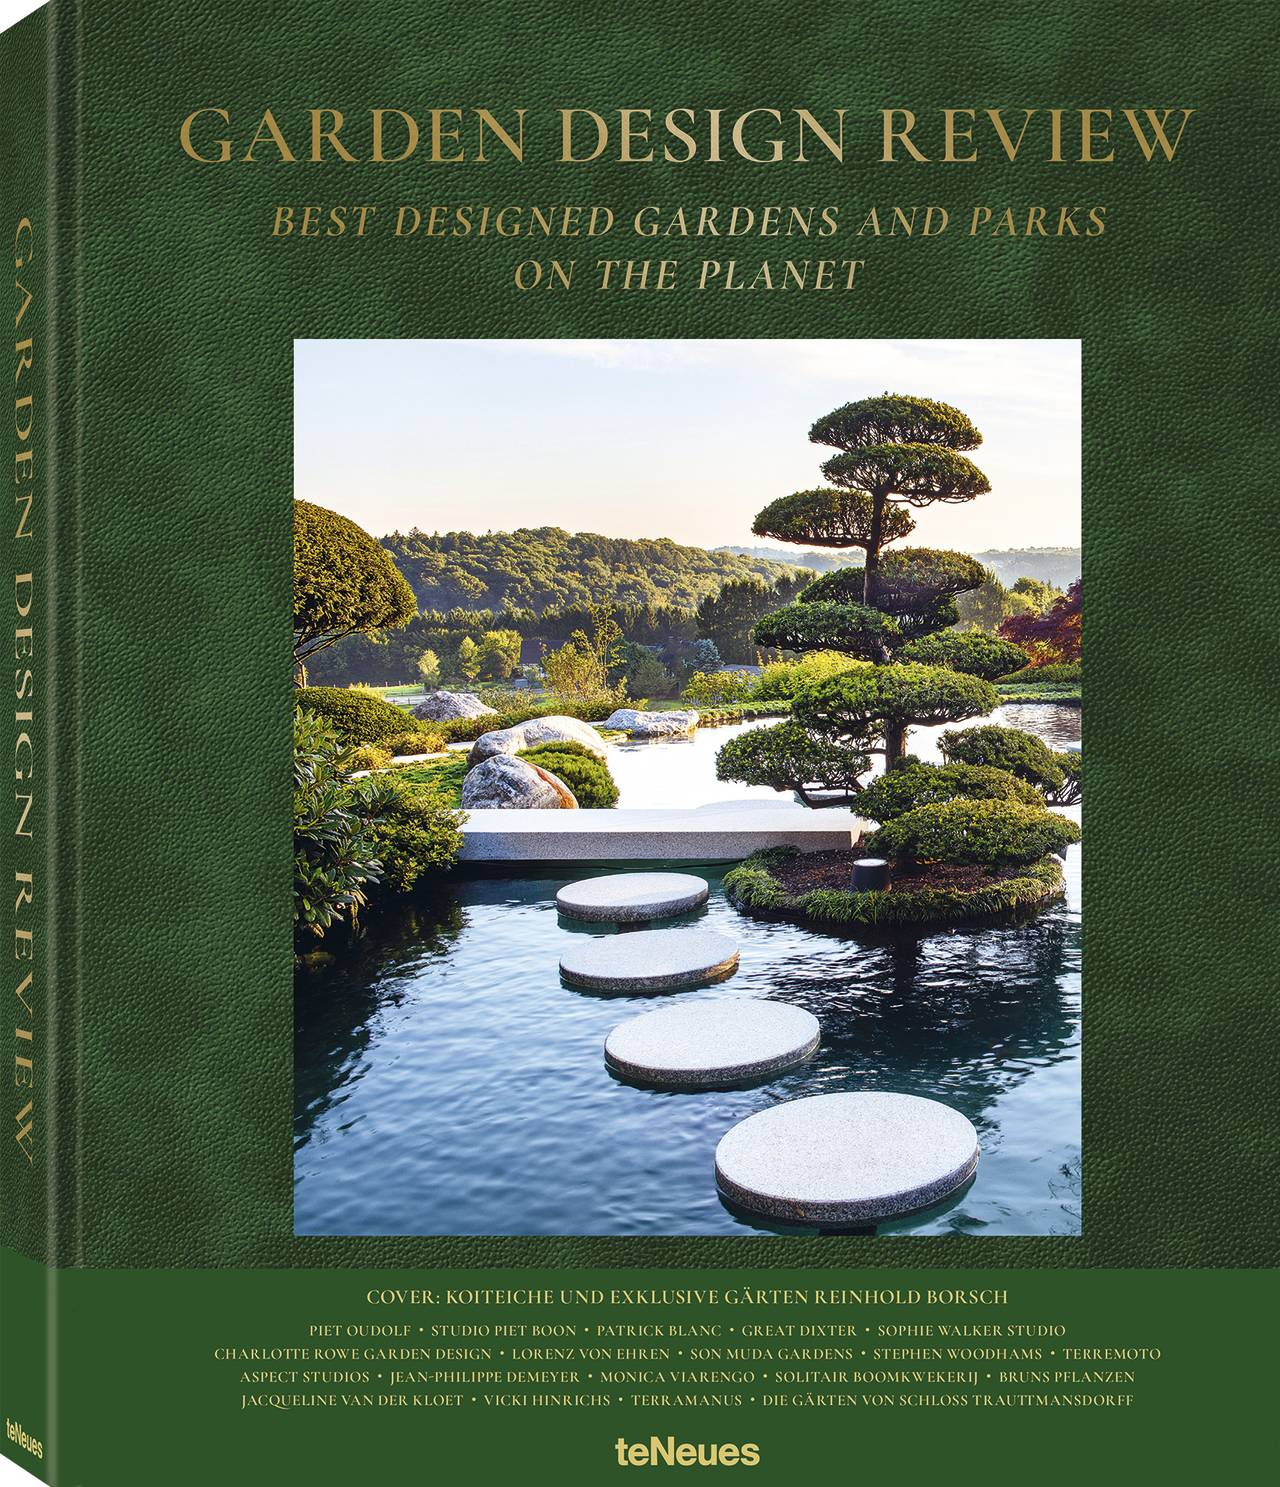 © Garden Design Review - Best Designed Gardens and Parks on the Planet, published by teNeues, www.teneues.com. Koiteiche und exklusive Gärten Reinhold Borsch, Kempen, Germany, Photo © Jürgen Becker